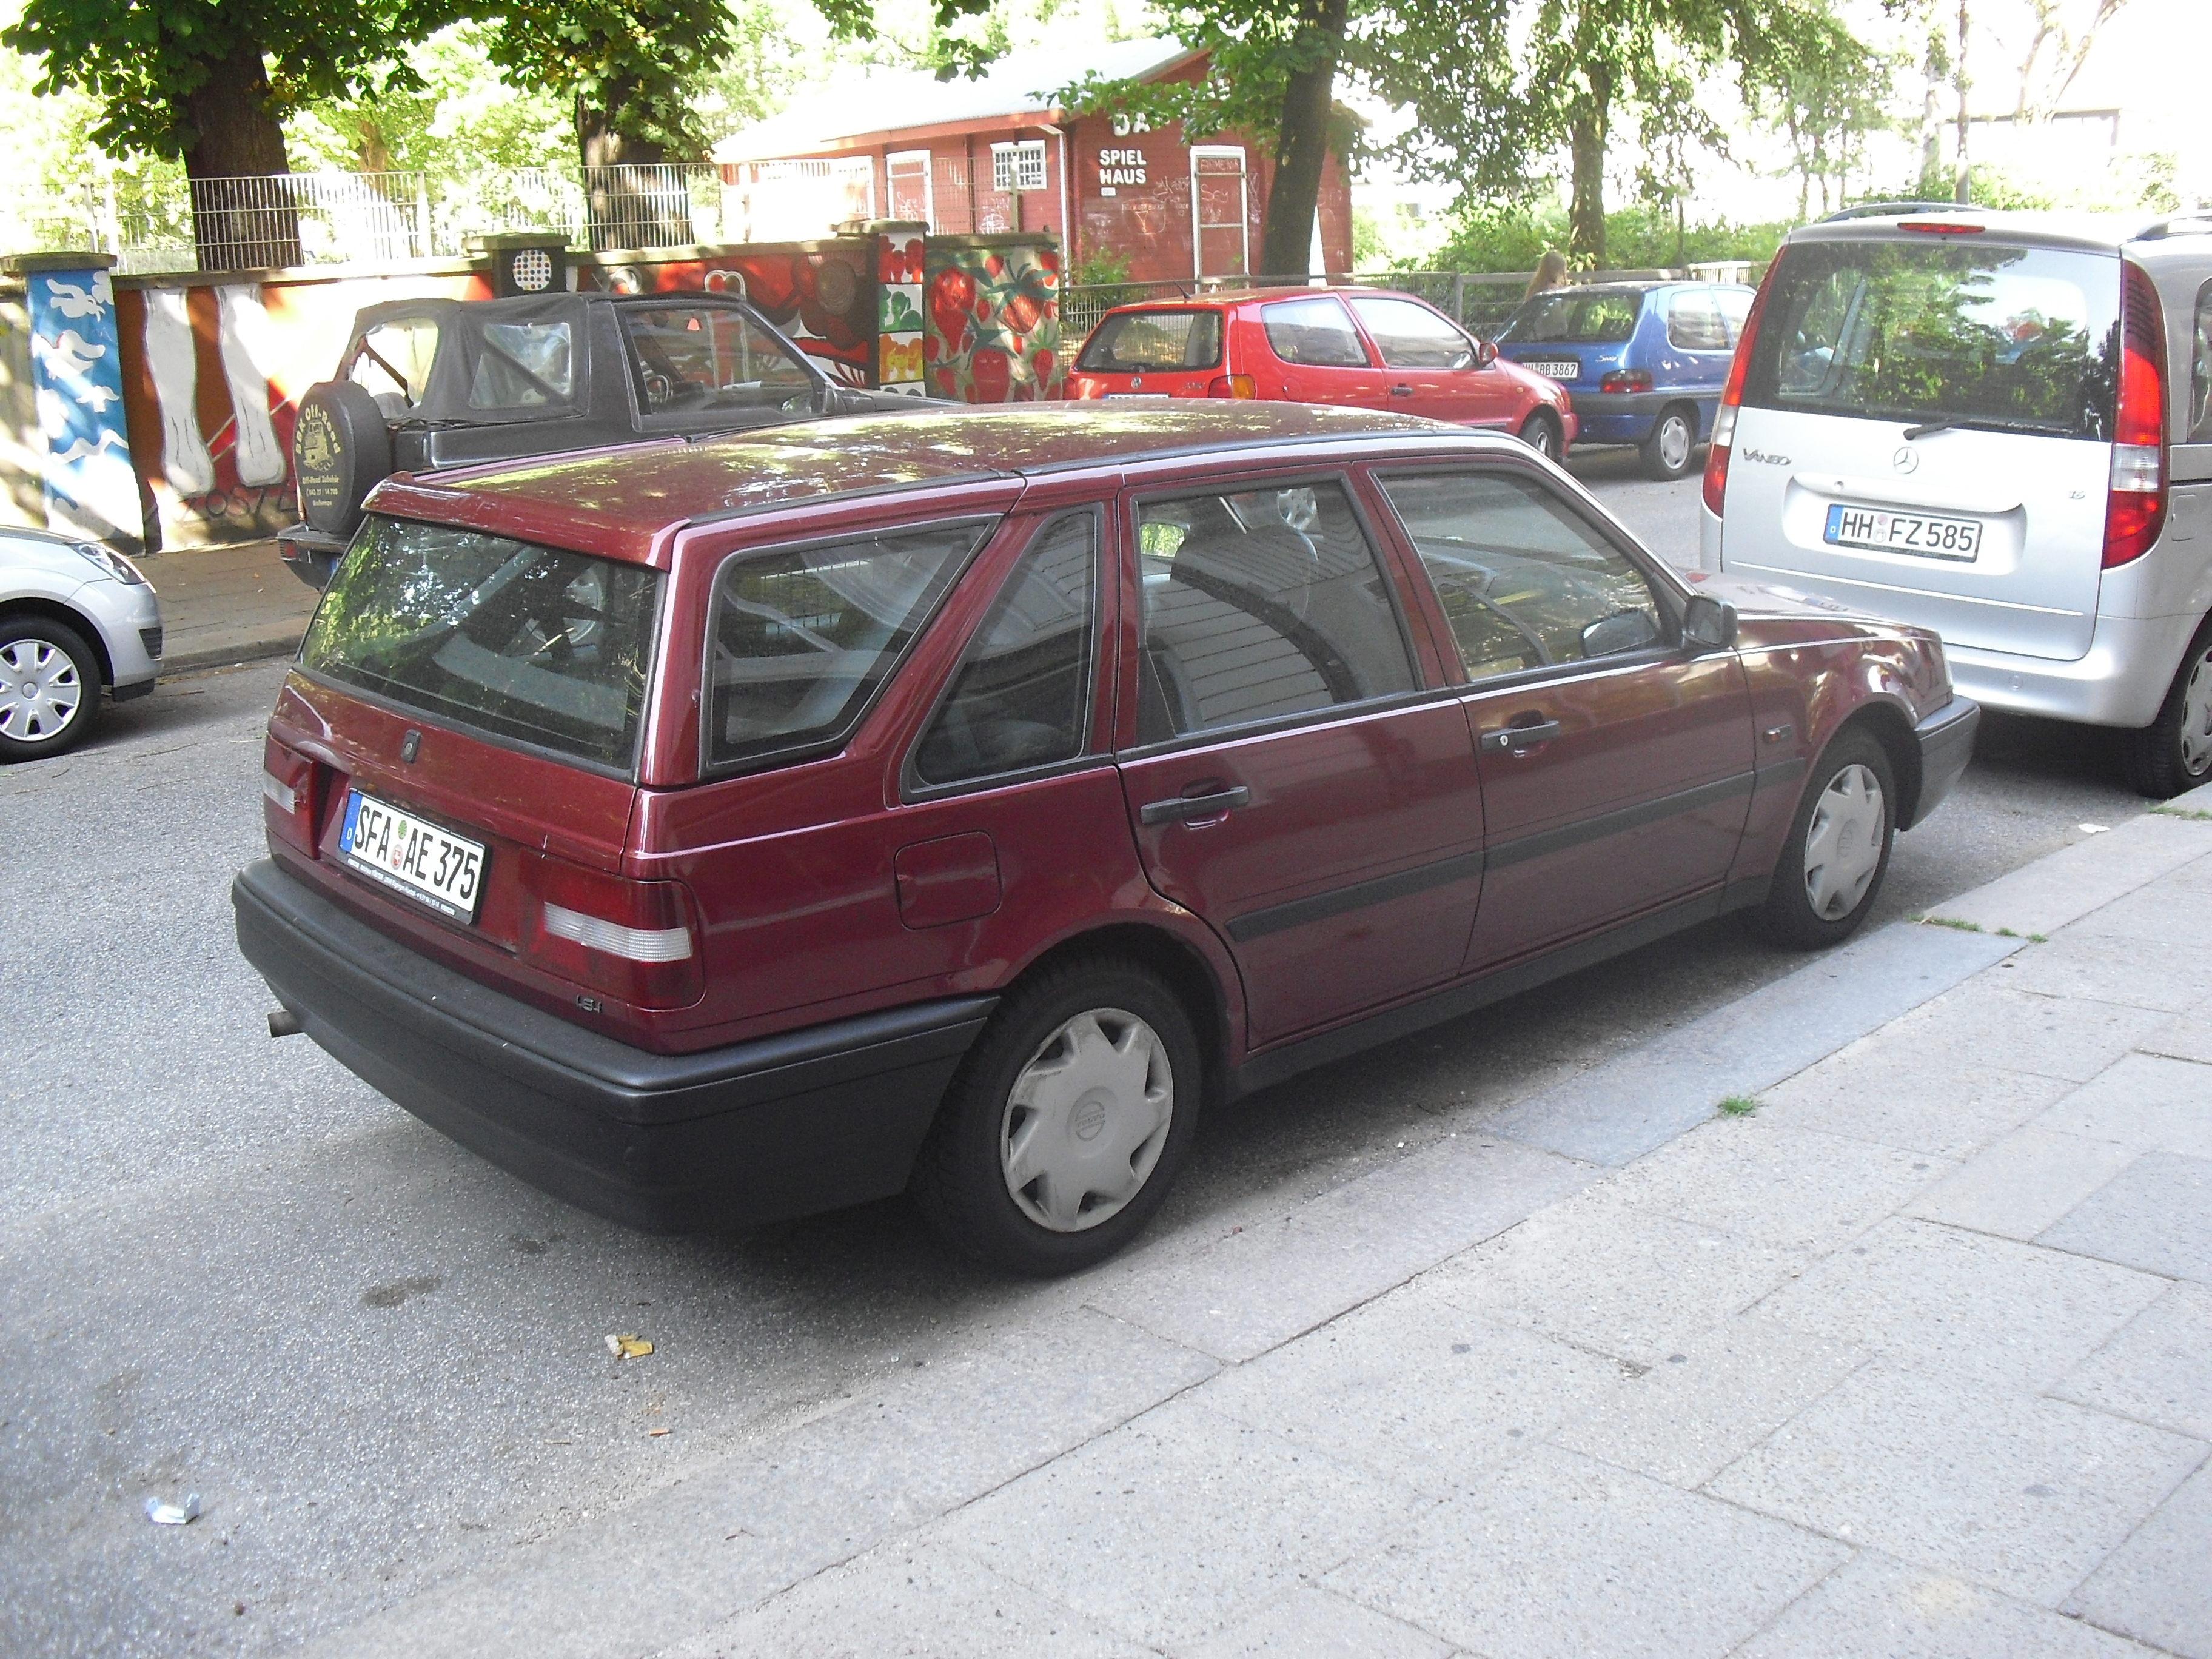 Where Is Nissan Made >> File:Volvo 440 Kombi.jpg - Wikimedia Commons